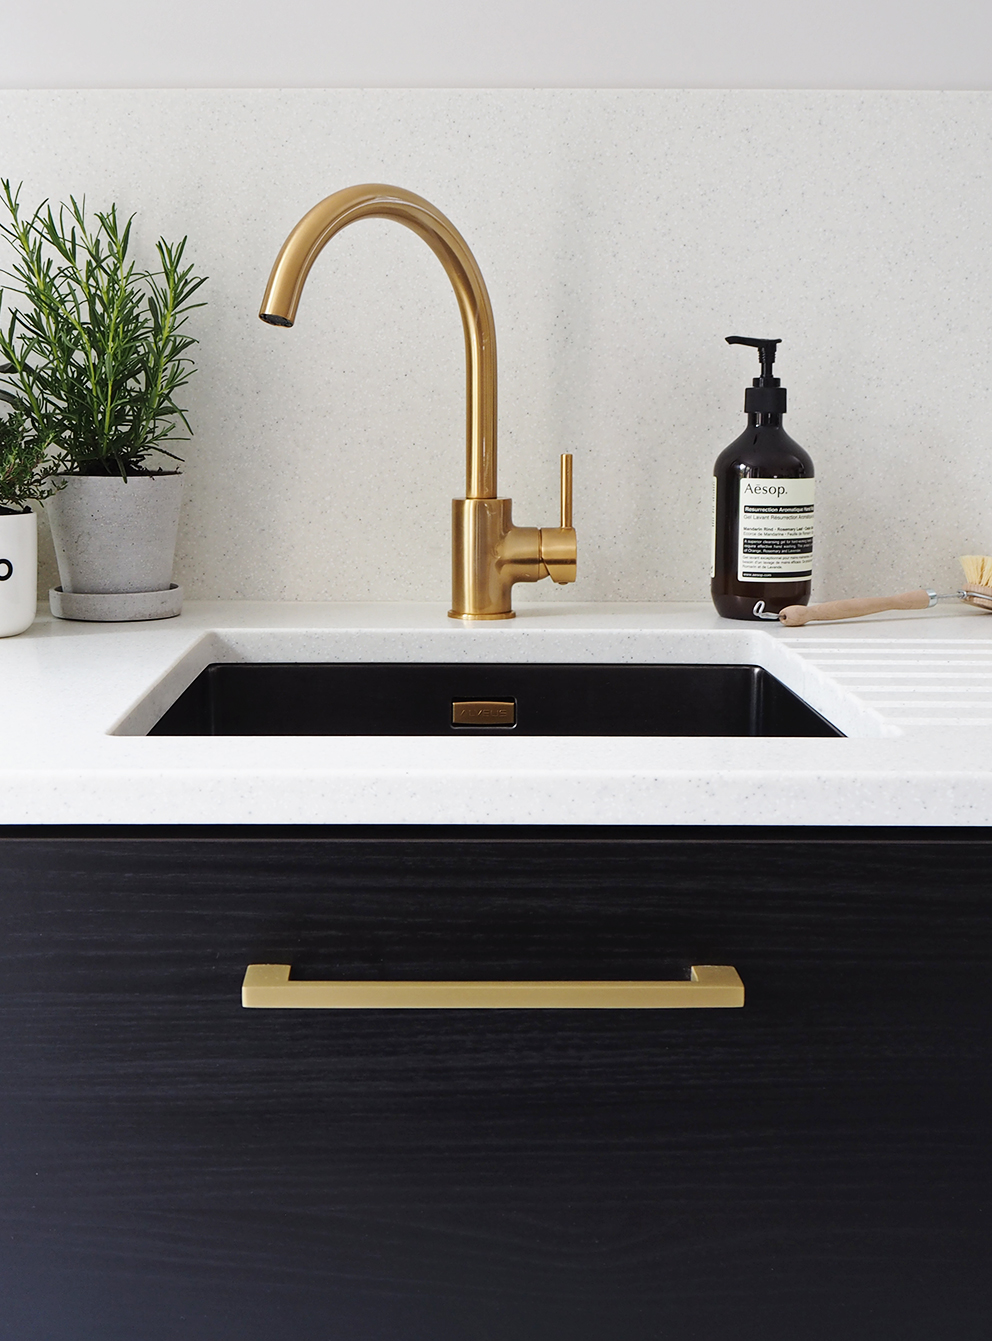 French For Pineapple Blog - brass gold contemporary tap and undermounted sink, black wood grain units and satin brass handle with herbs on the pale flecked mistral mist worktop and splashback